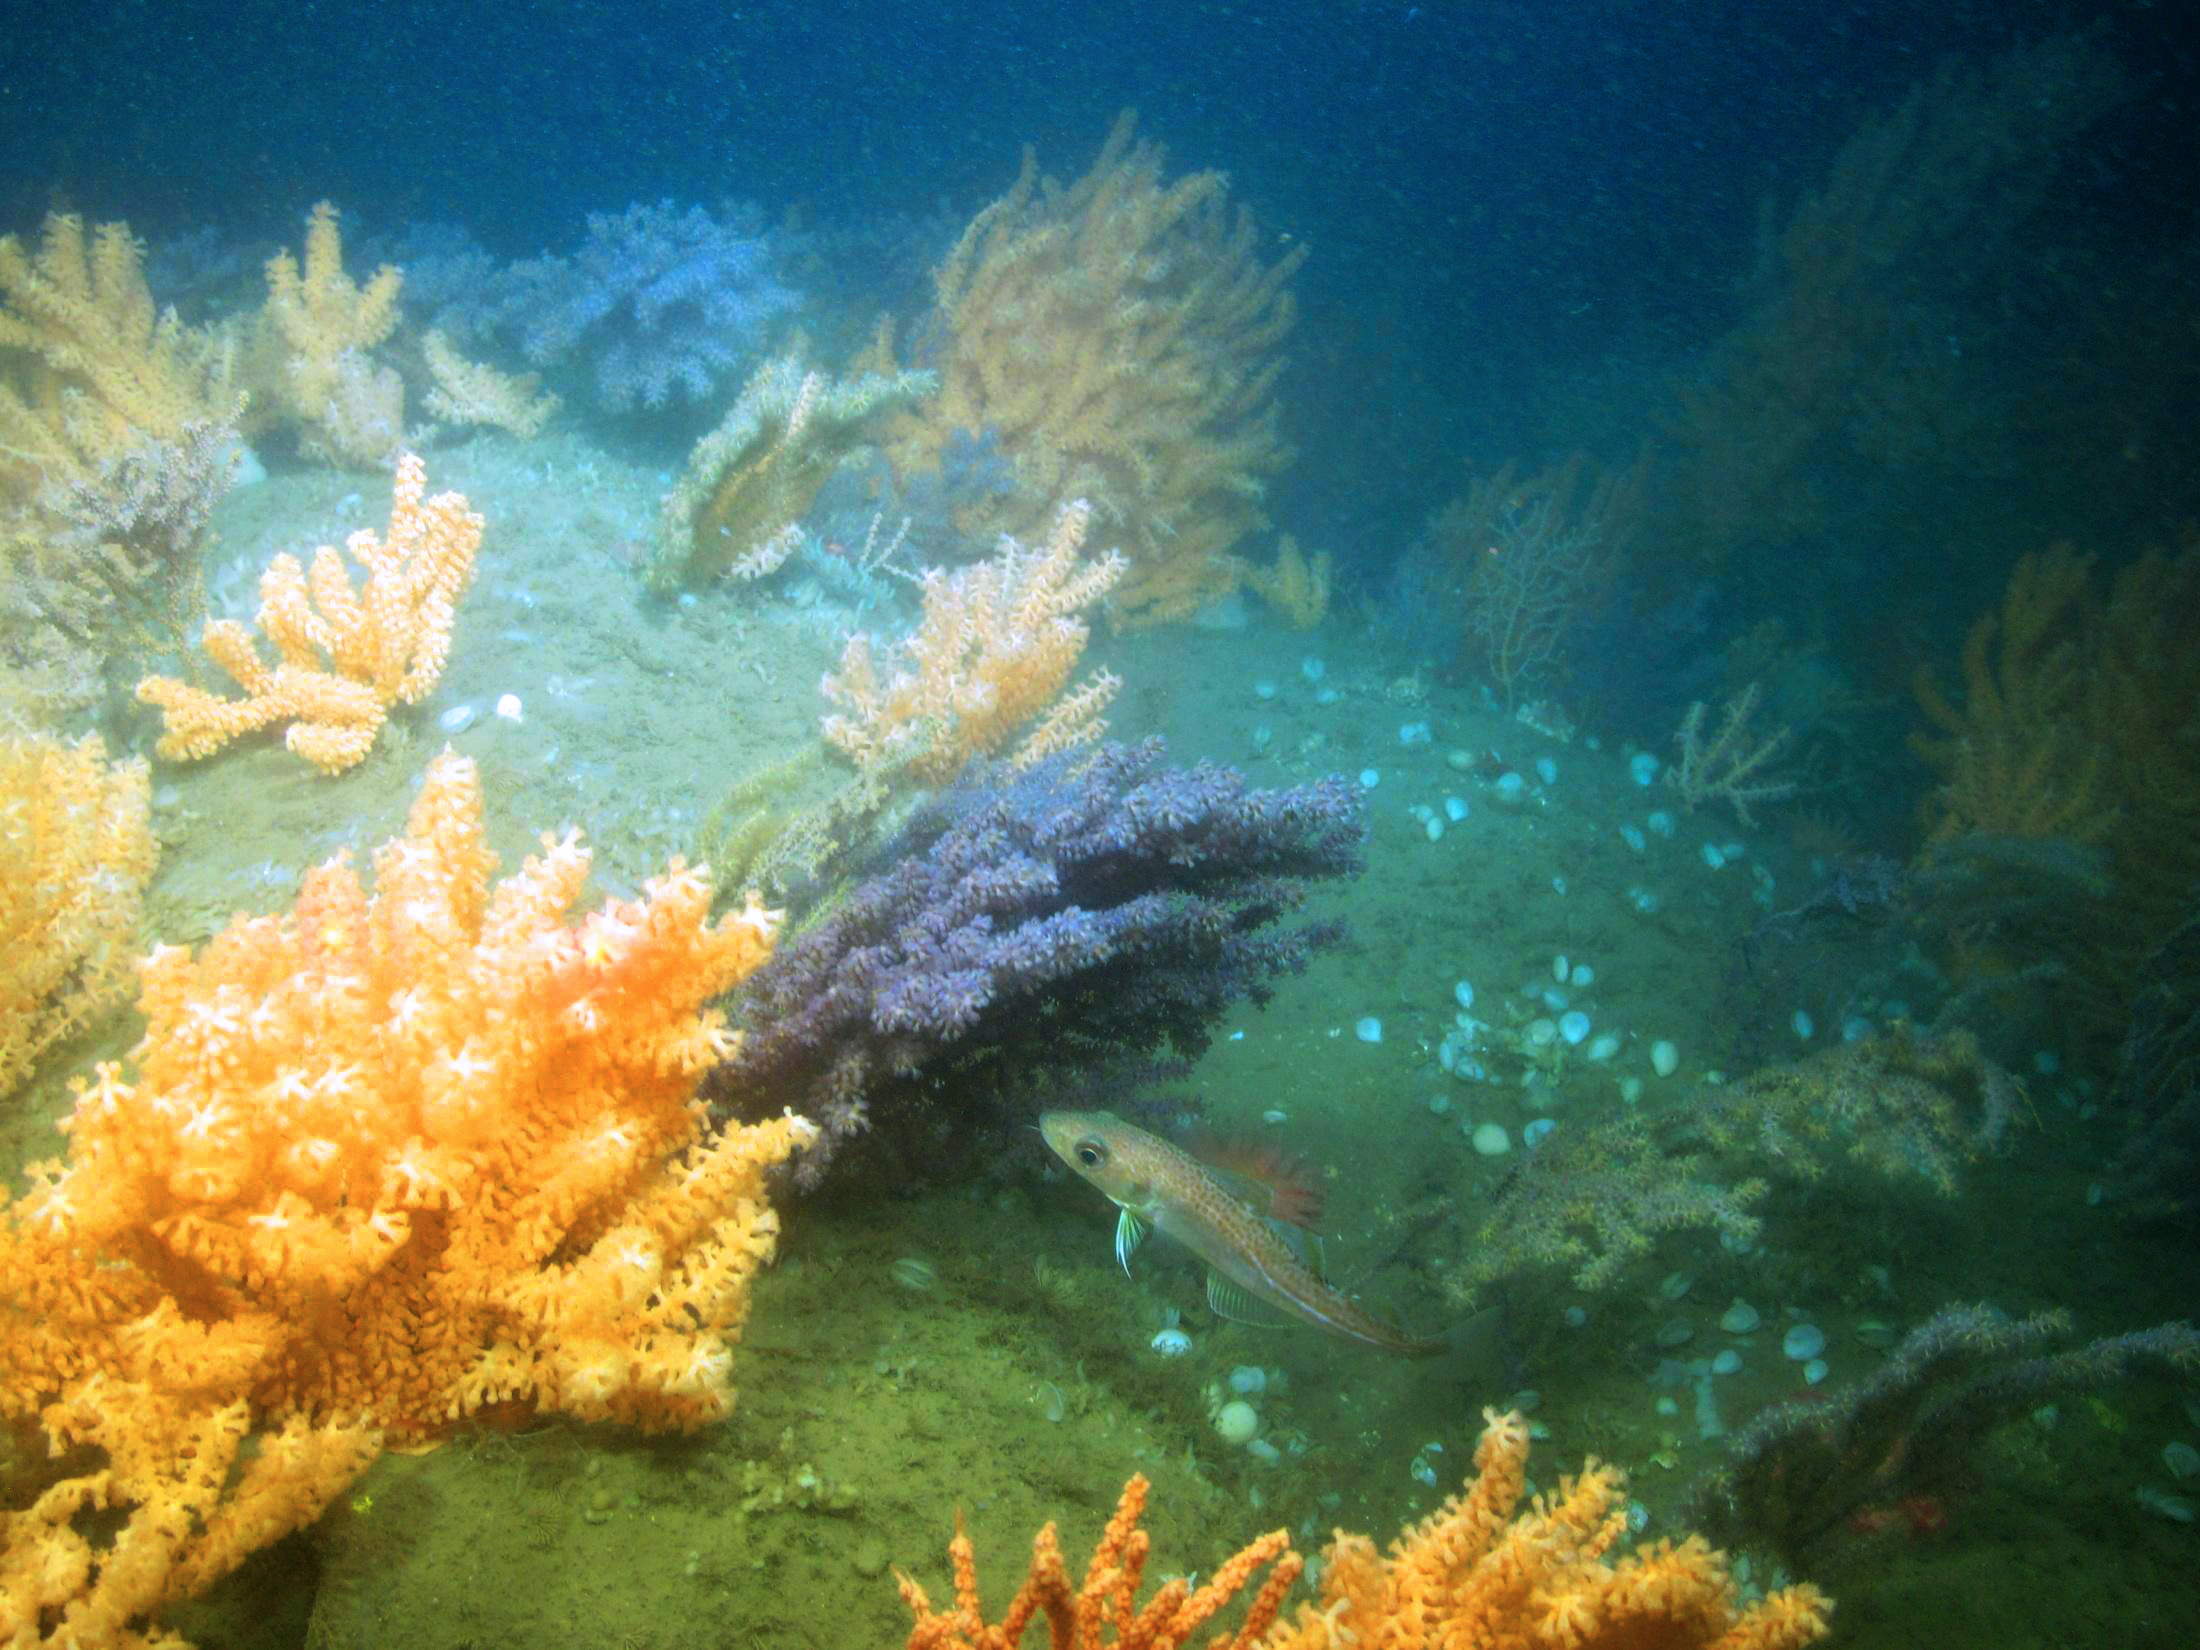 Coral garden habitat with a juvenile Atlantic cod swimming among the colonies, searching for shrimp. The corals provide both shelter from predators and a source of prey. (Photo courtesy of Peter Auster)